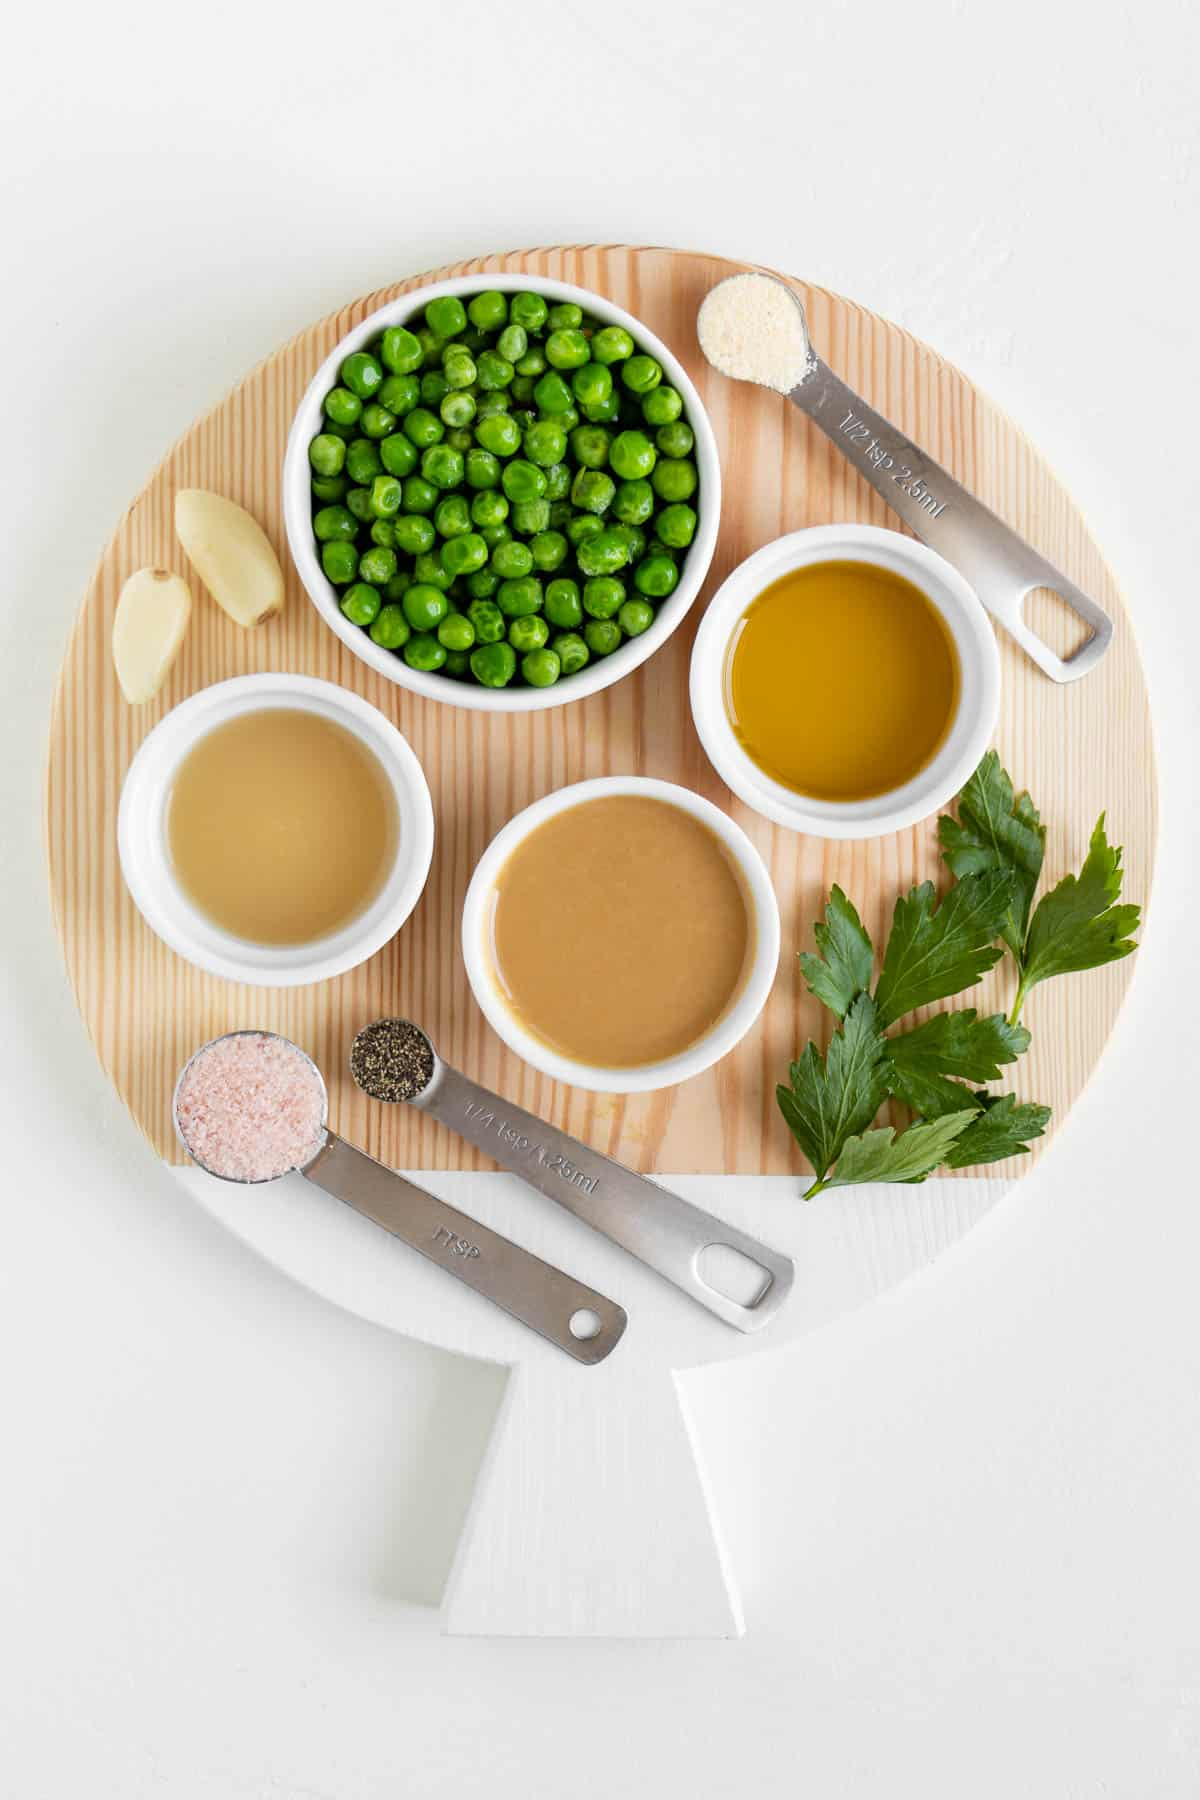 a circular wood cutting board topped with lemon juice, parsley, olive oil, tahini, garlic, peas, salt, and pepper